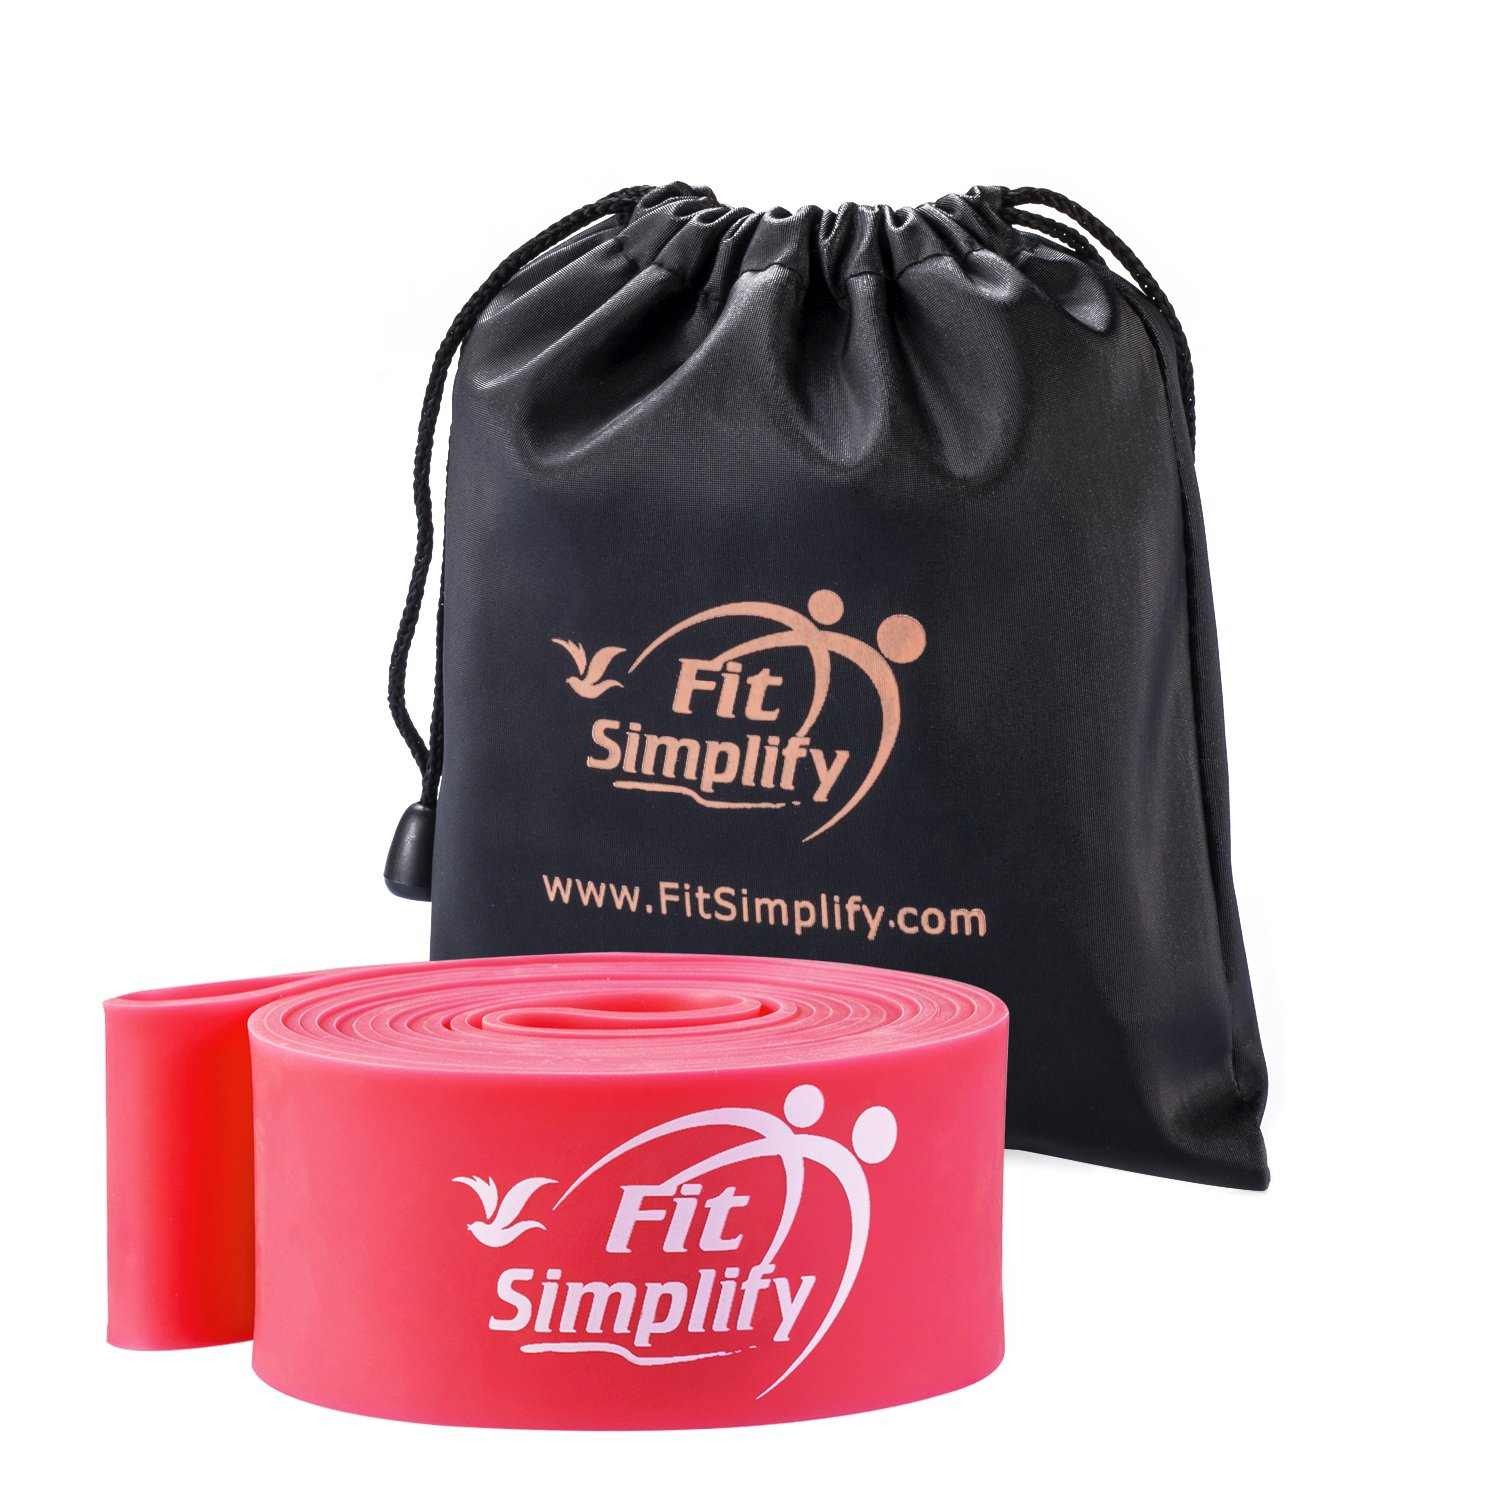 Fit Simplify Ballet Stretch Bands - Dance Stretchers and Flexiblity Trainers - For Dancers, Skaters and Gymnasts - Instructional Booklet, Carry Bag, Stretching e-Guide and Online Videos